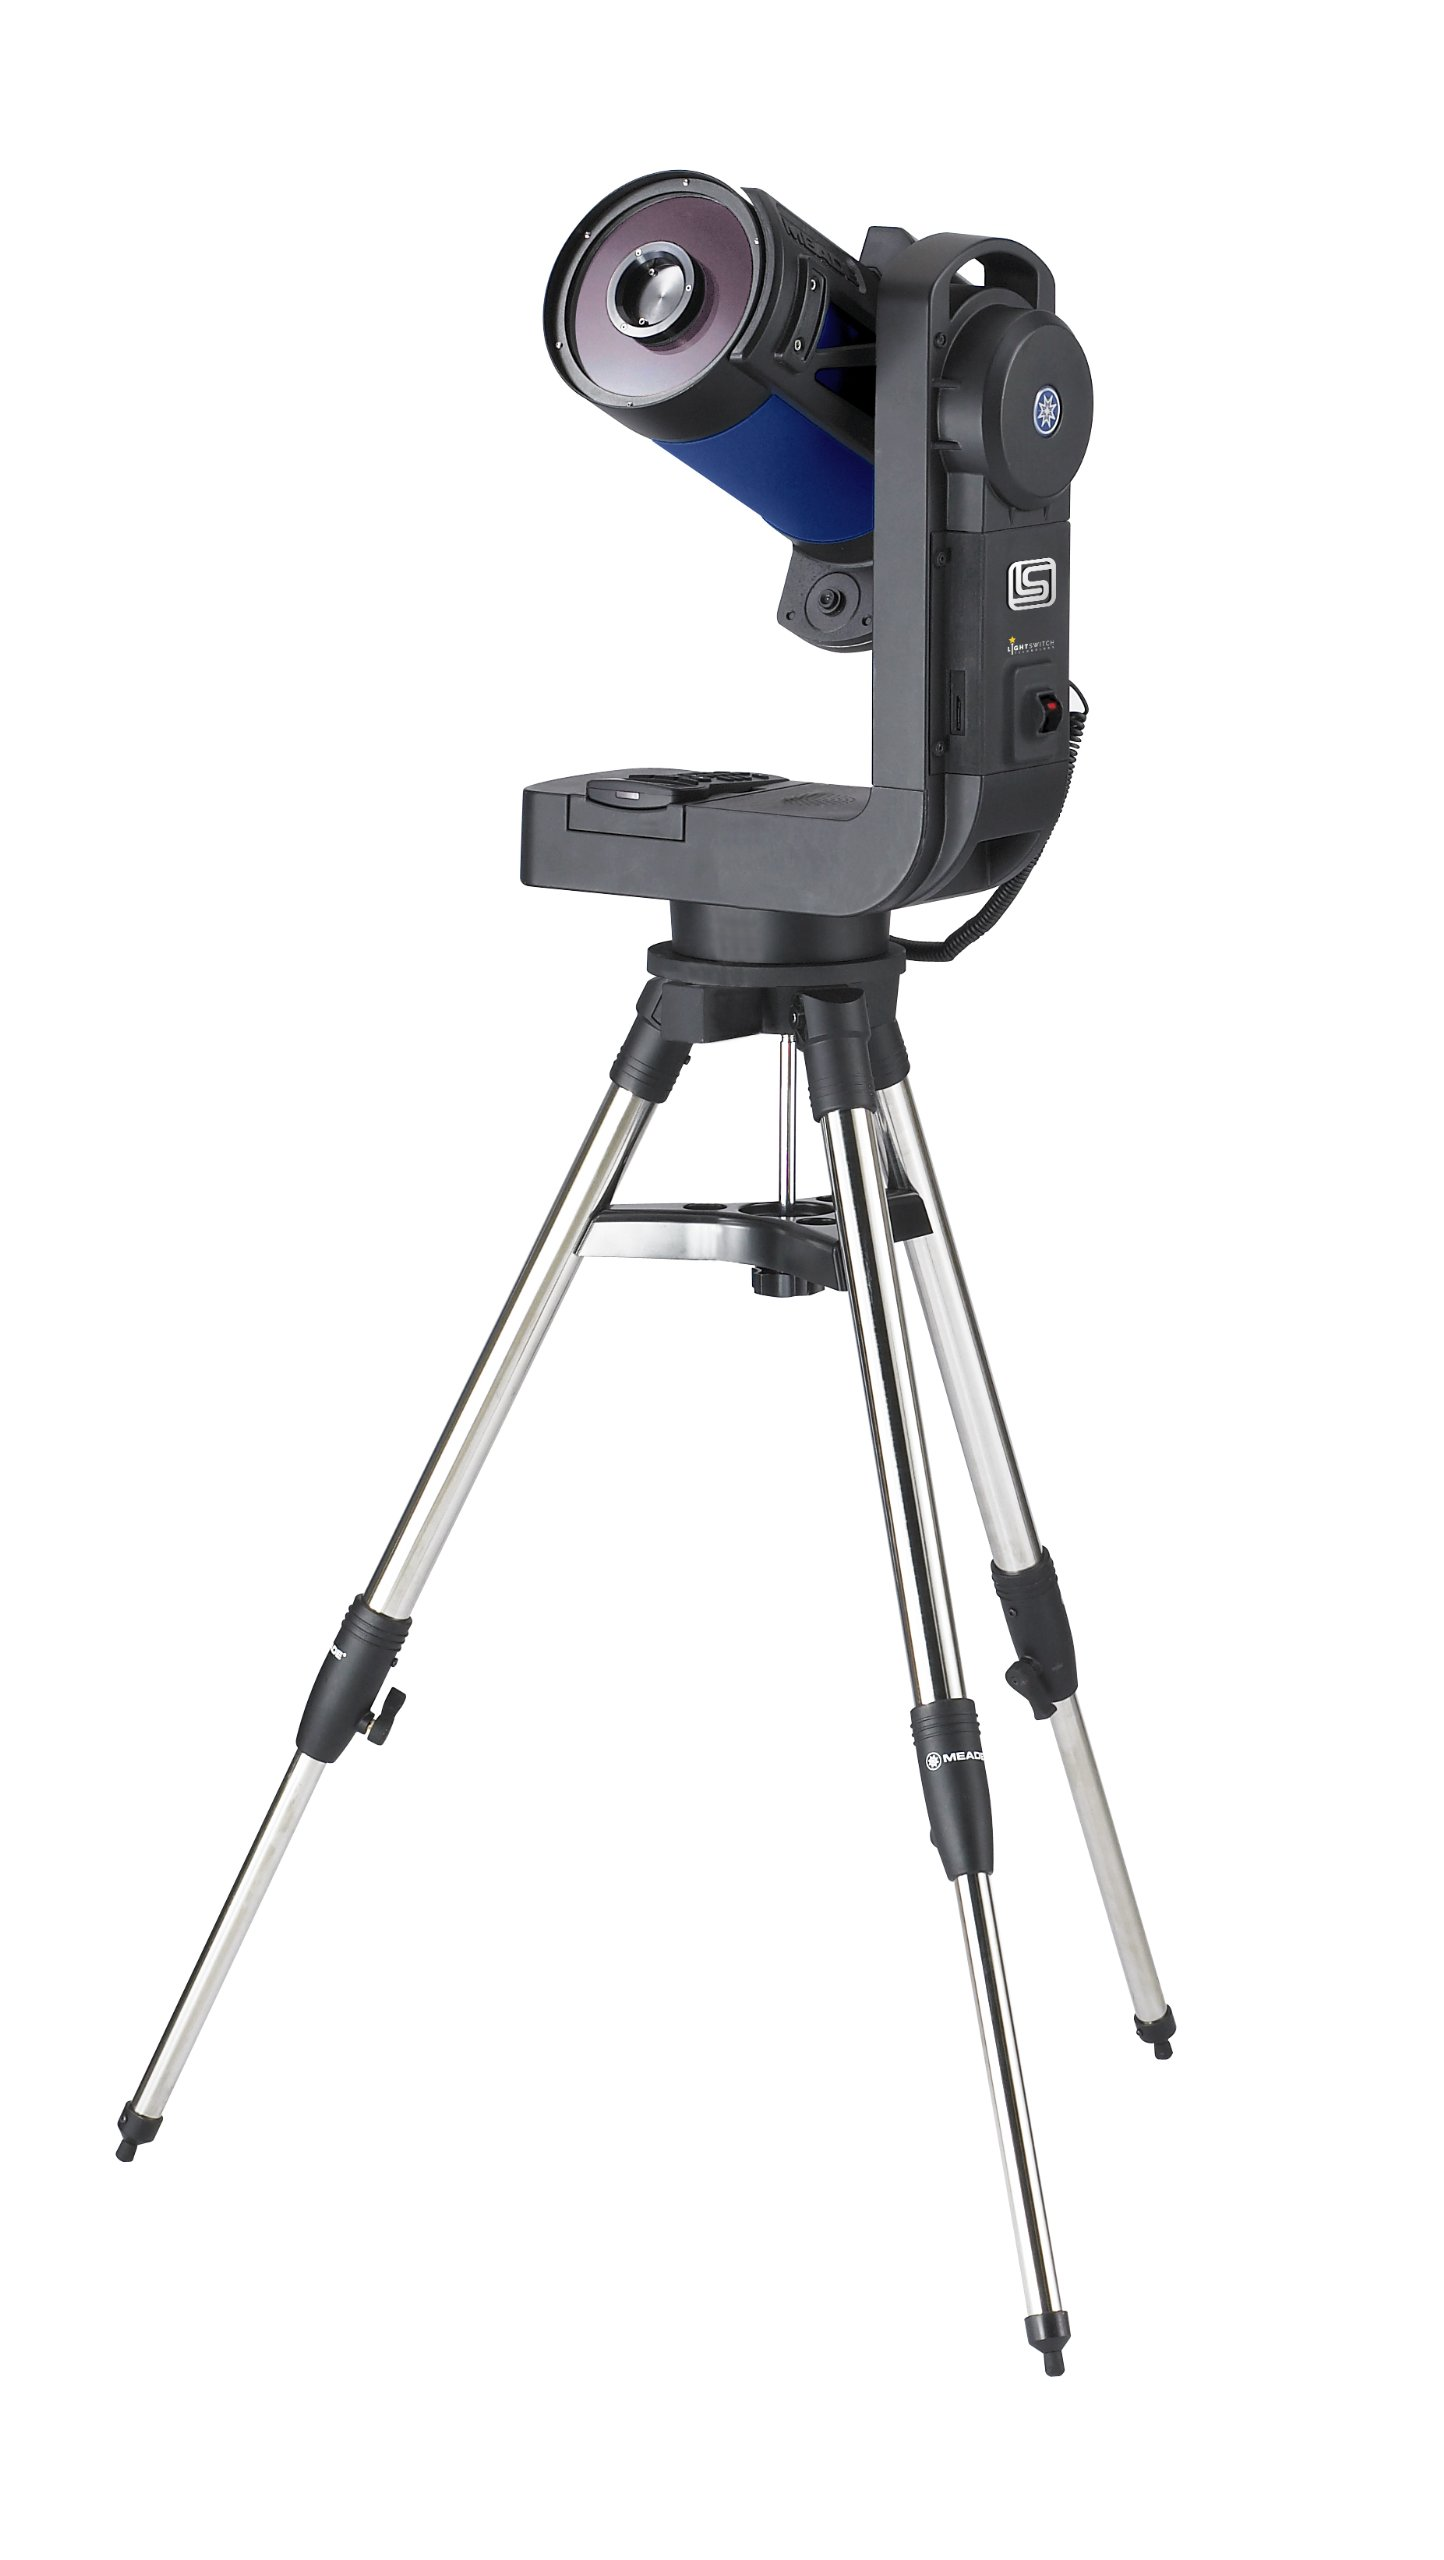 Meade Instruments 6-inch Lightswitch Series Telescope with Advanced Coma-Free Optics by Meade Instruments